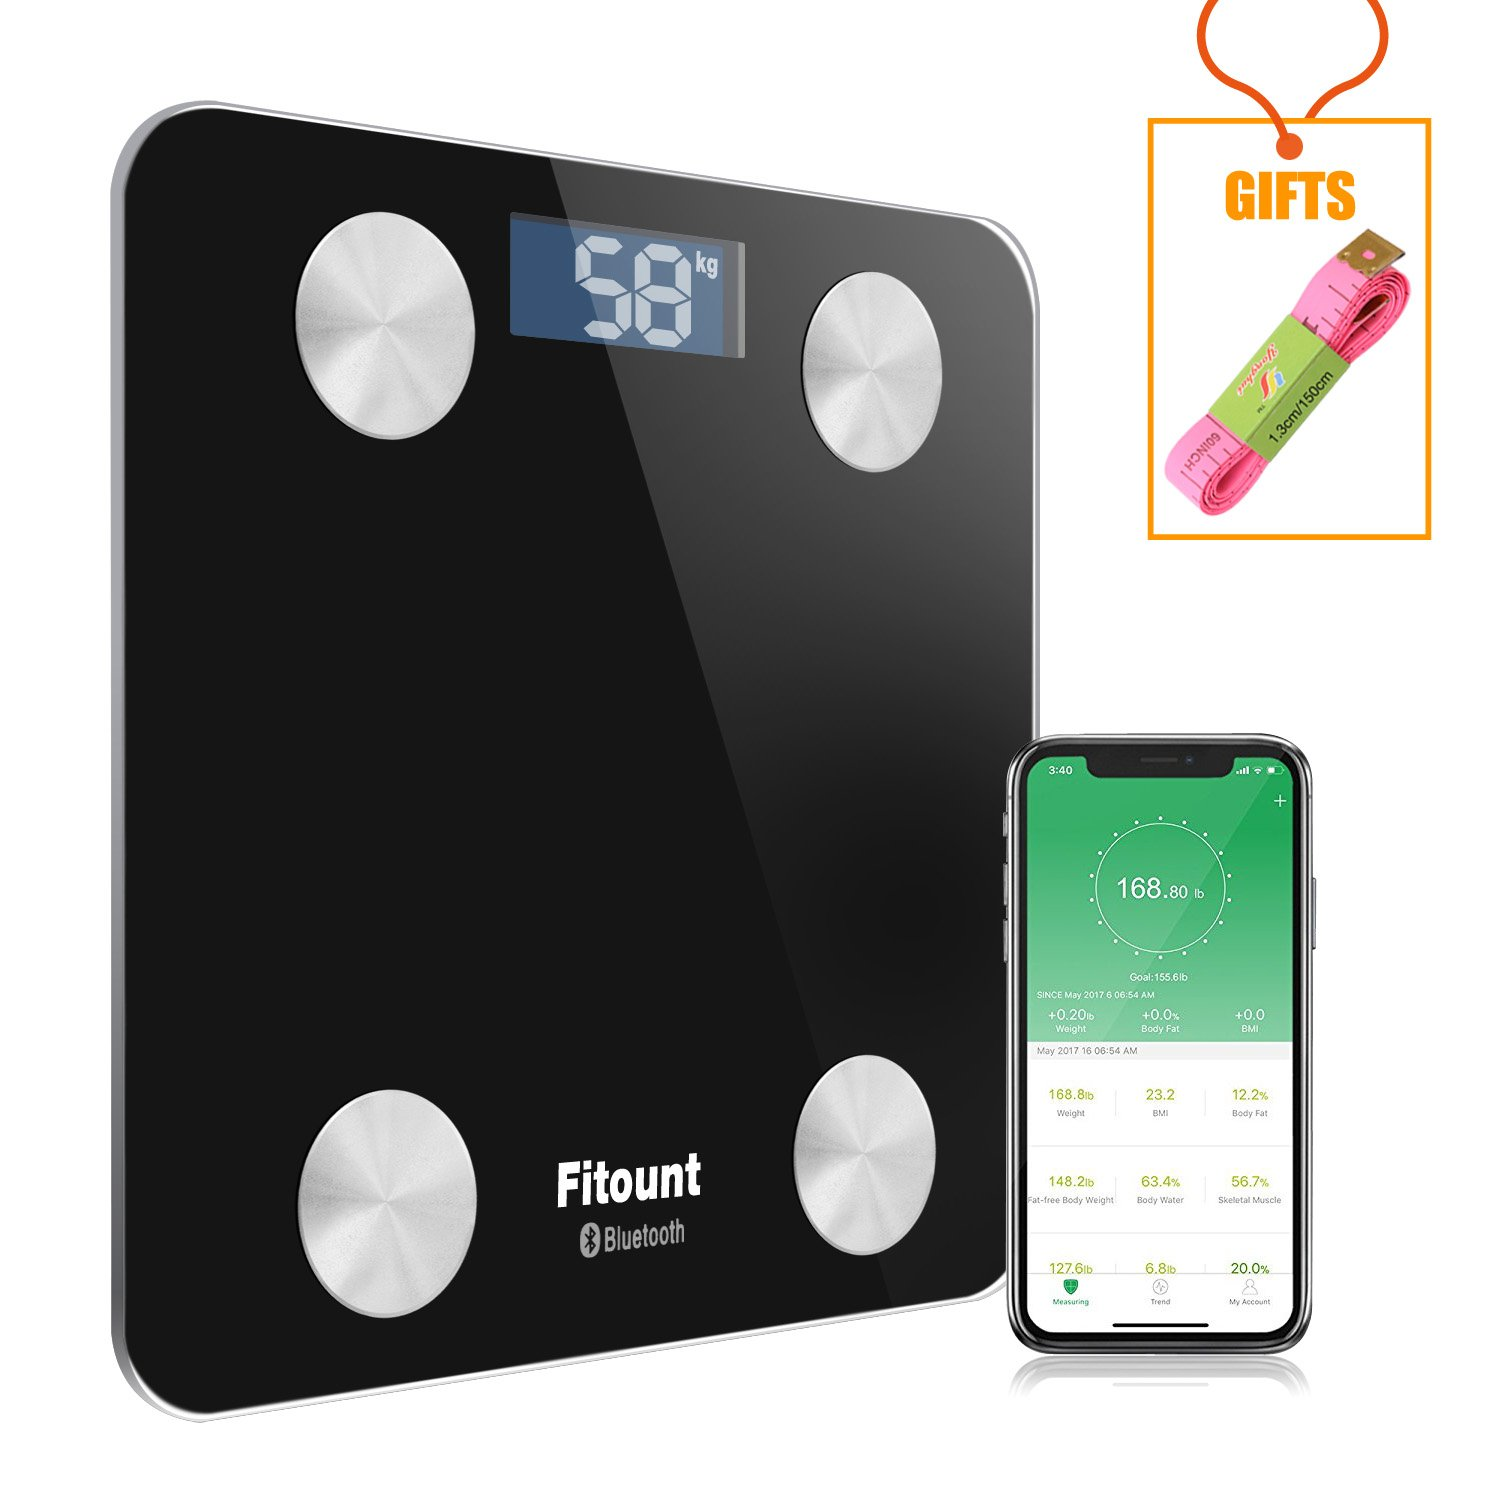 Bluetooth Body Fat Scale,Fitount Smart Wireless Digital Bathroom Weight Gurus Scale Body Composition Analyzer with App for Body weight Body Fat Water Muscle Mass BMI BMR Bone Mass Visceral Fat